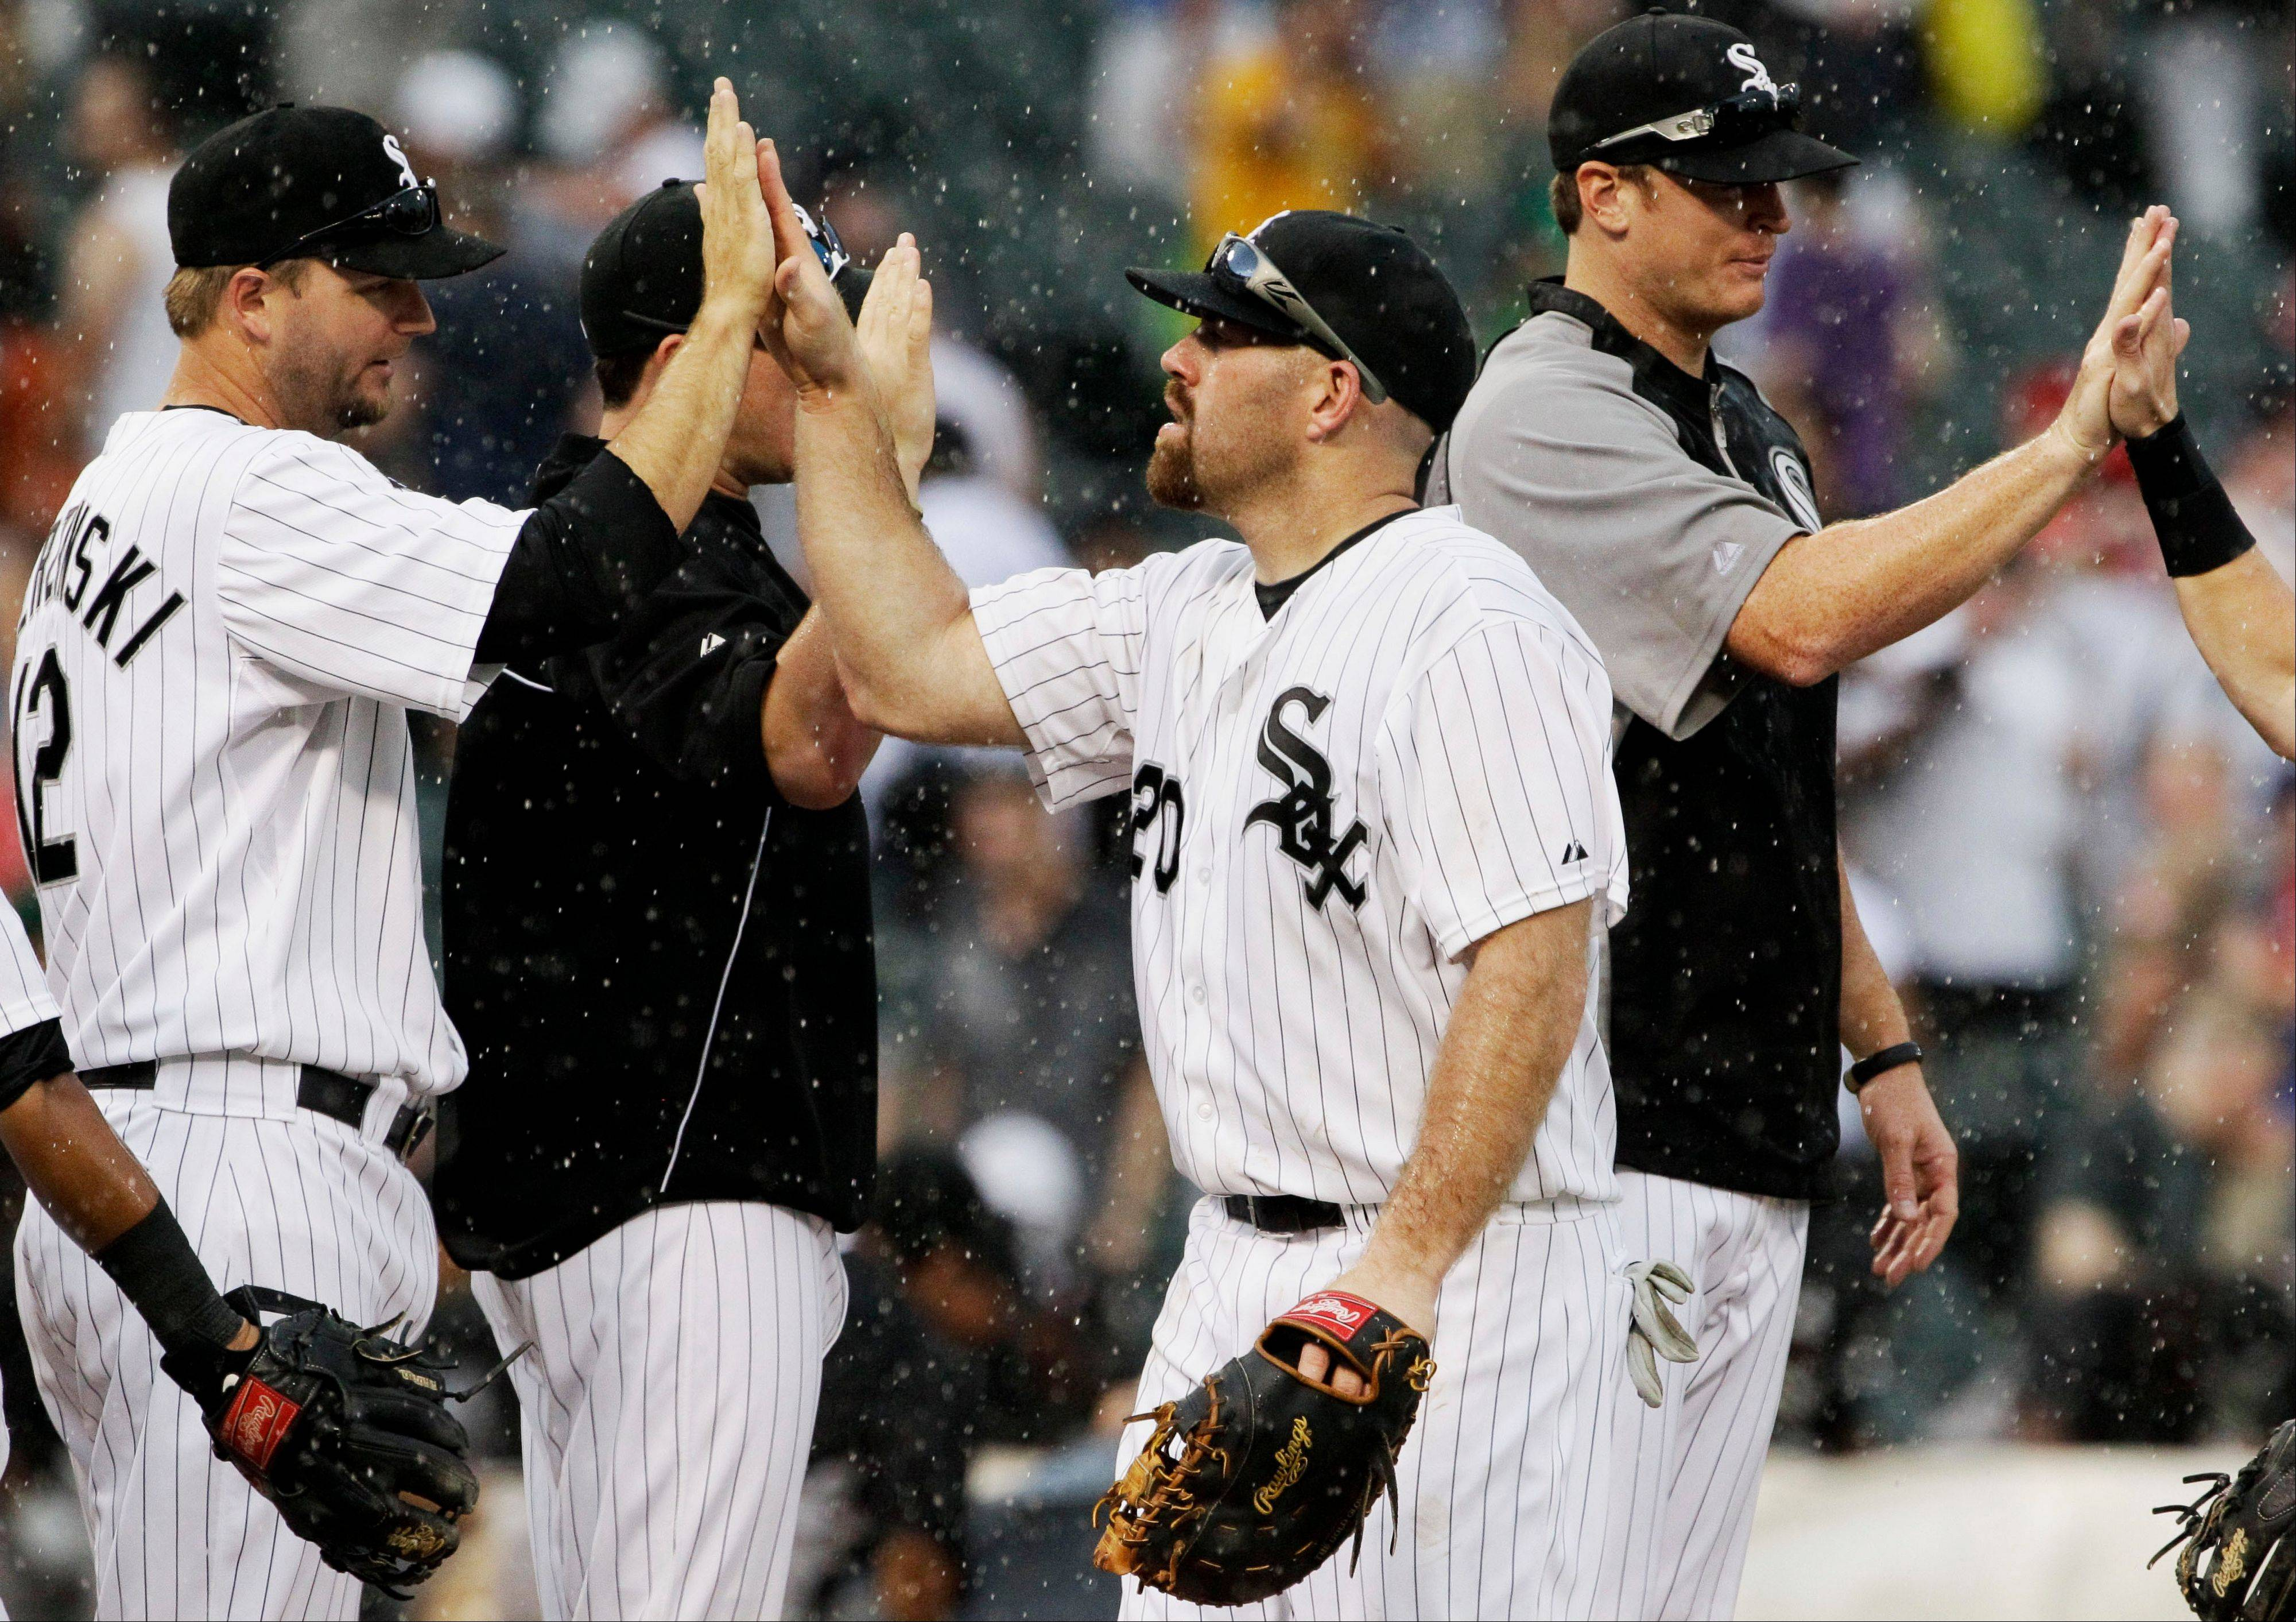 Kevin Youkilis, front right, celebrates with A.J. Pierzynski, left, after the White Sox defeated the Texas Rangers 2-1 Thursday. Mike North contends Pierzynski may be the most important player on the Sox in the second half of the season.